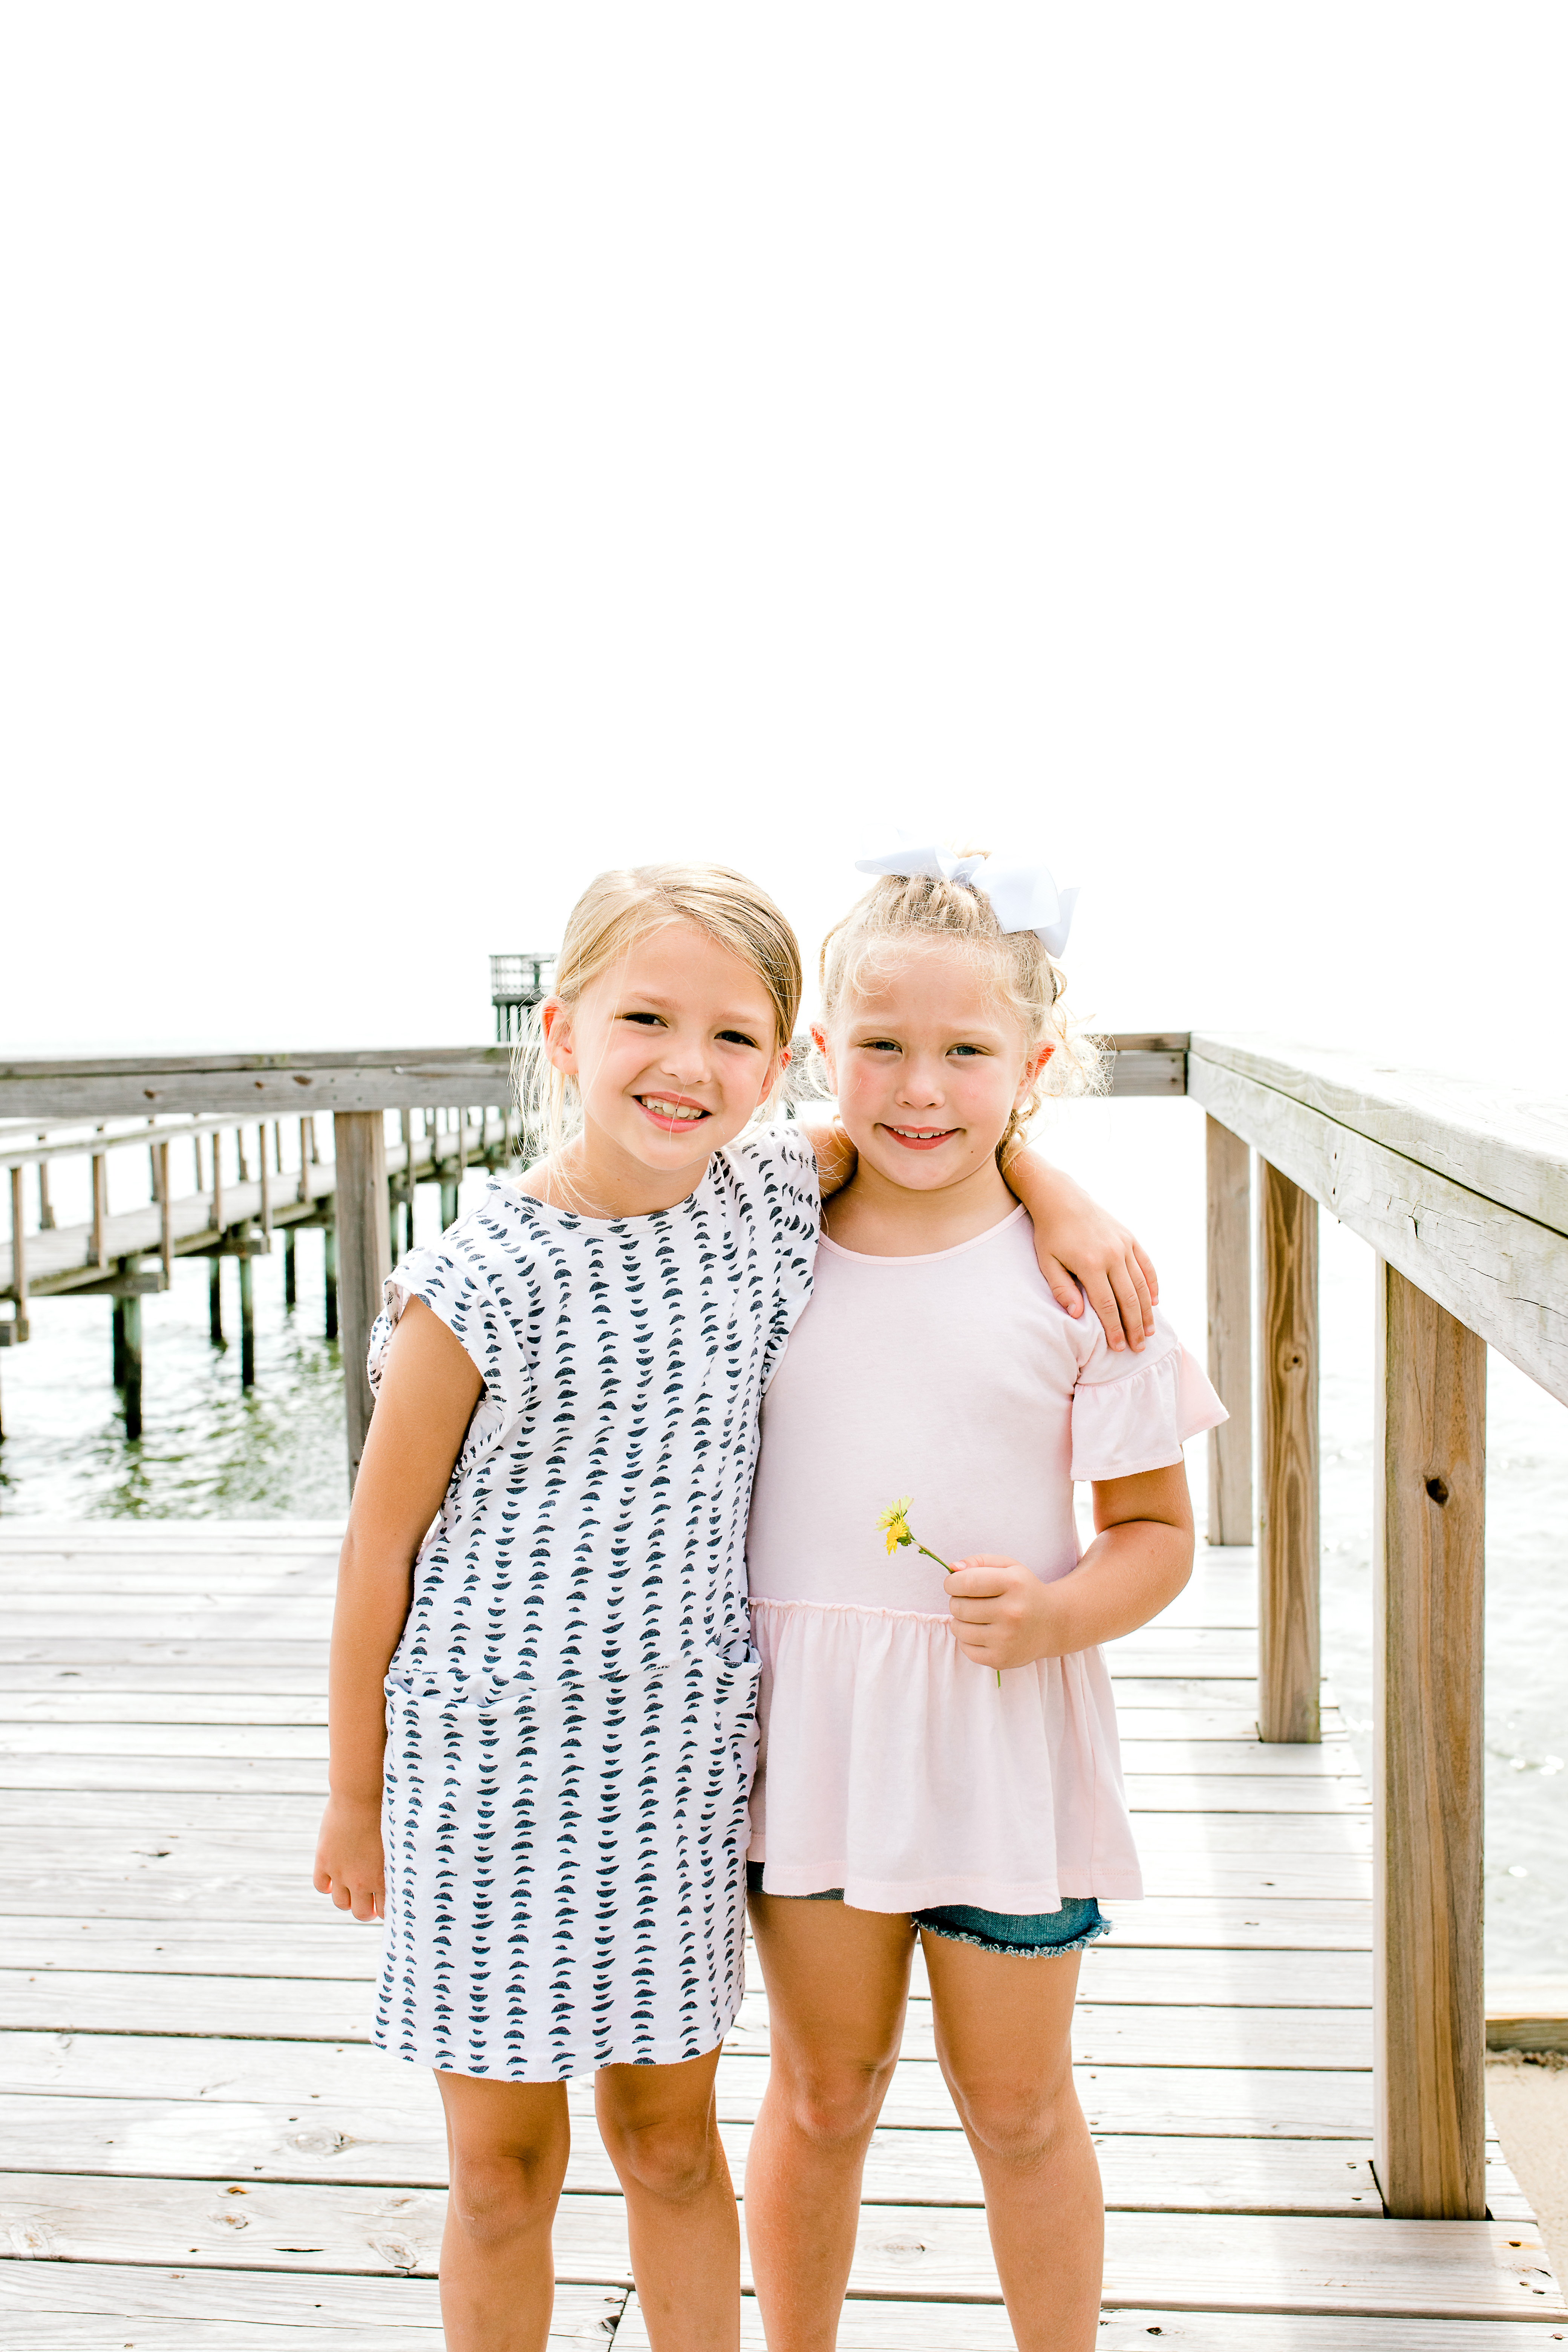 Sisters Standing on the Dock in the Summer Heat